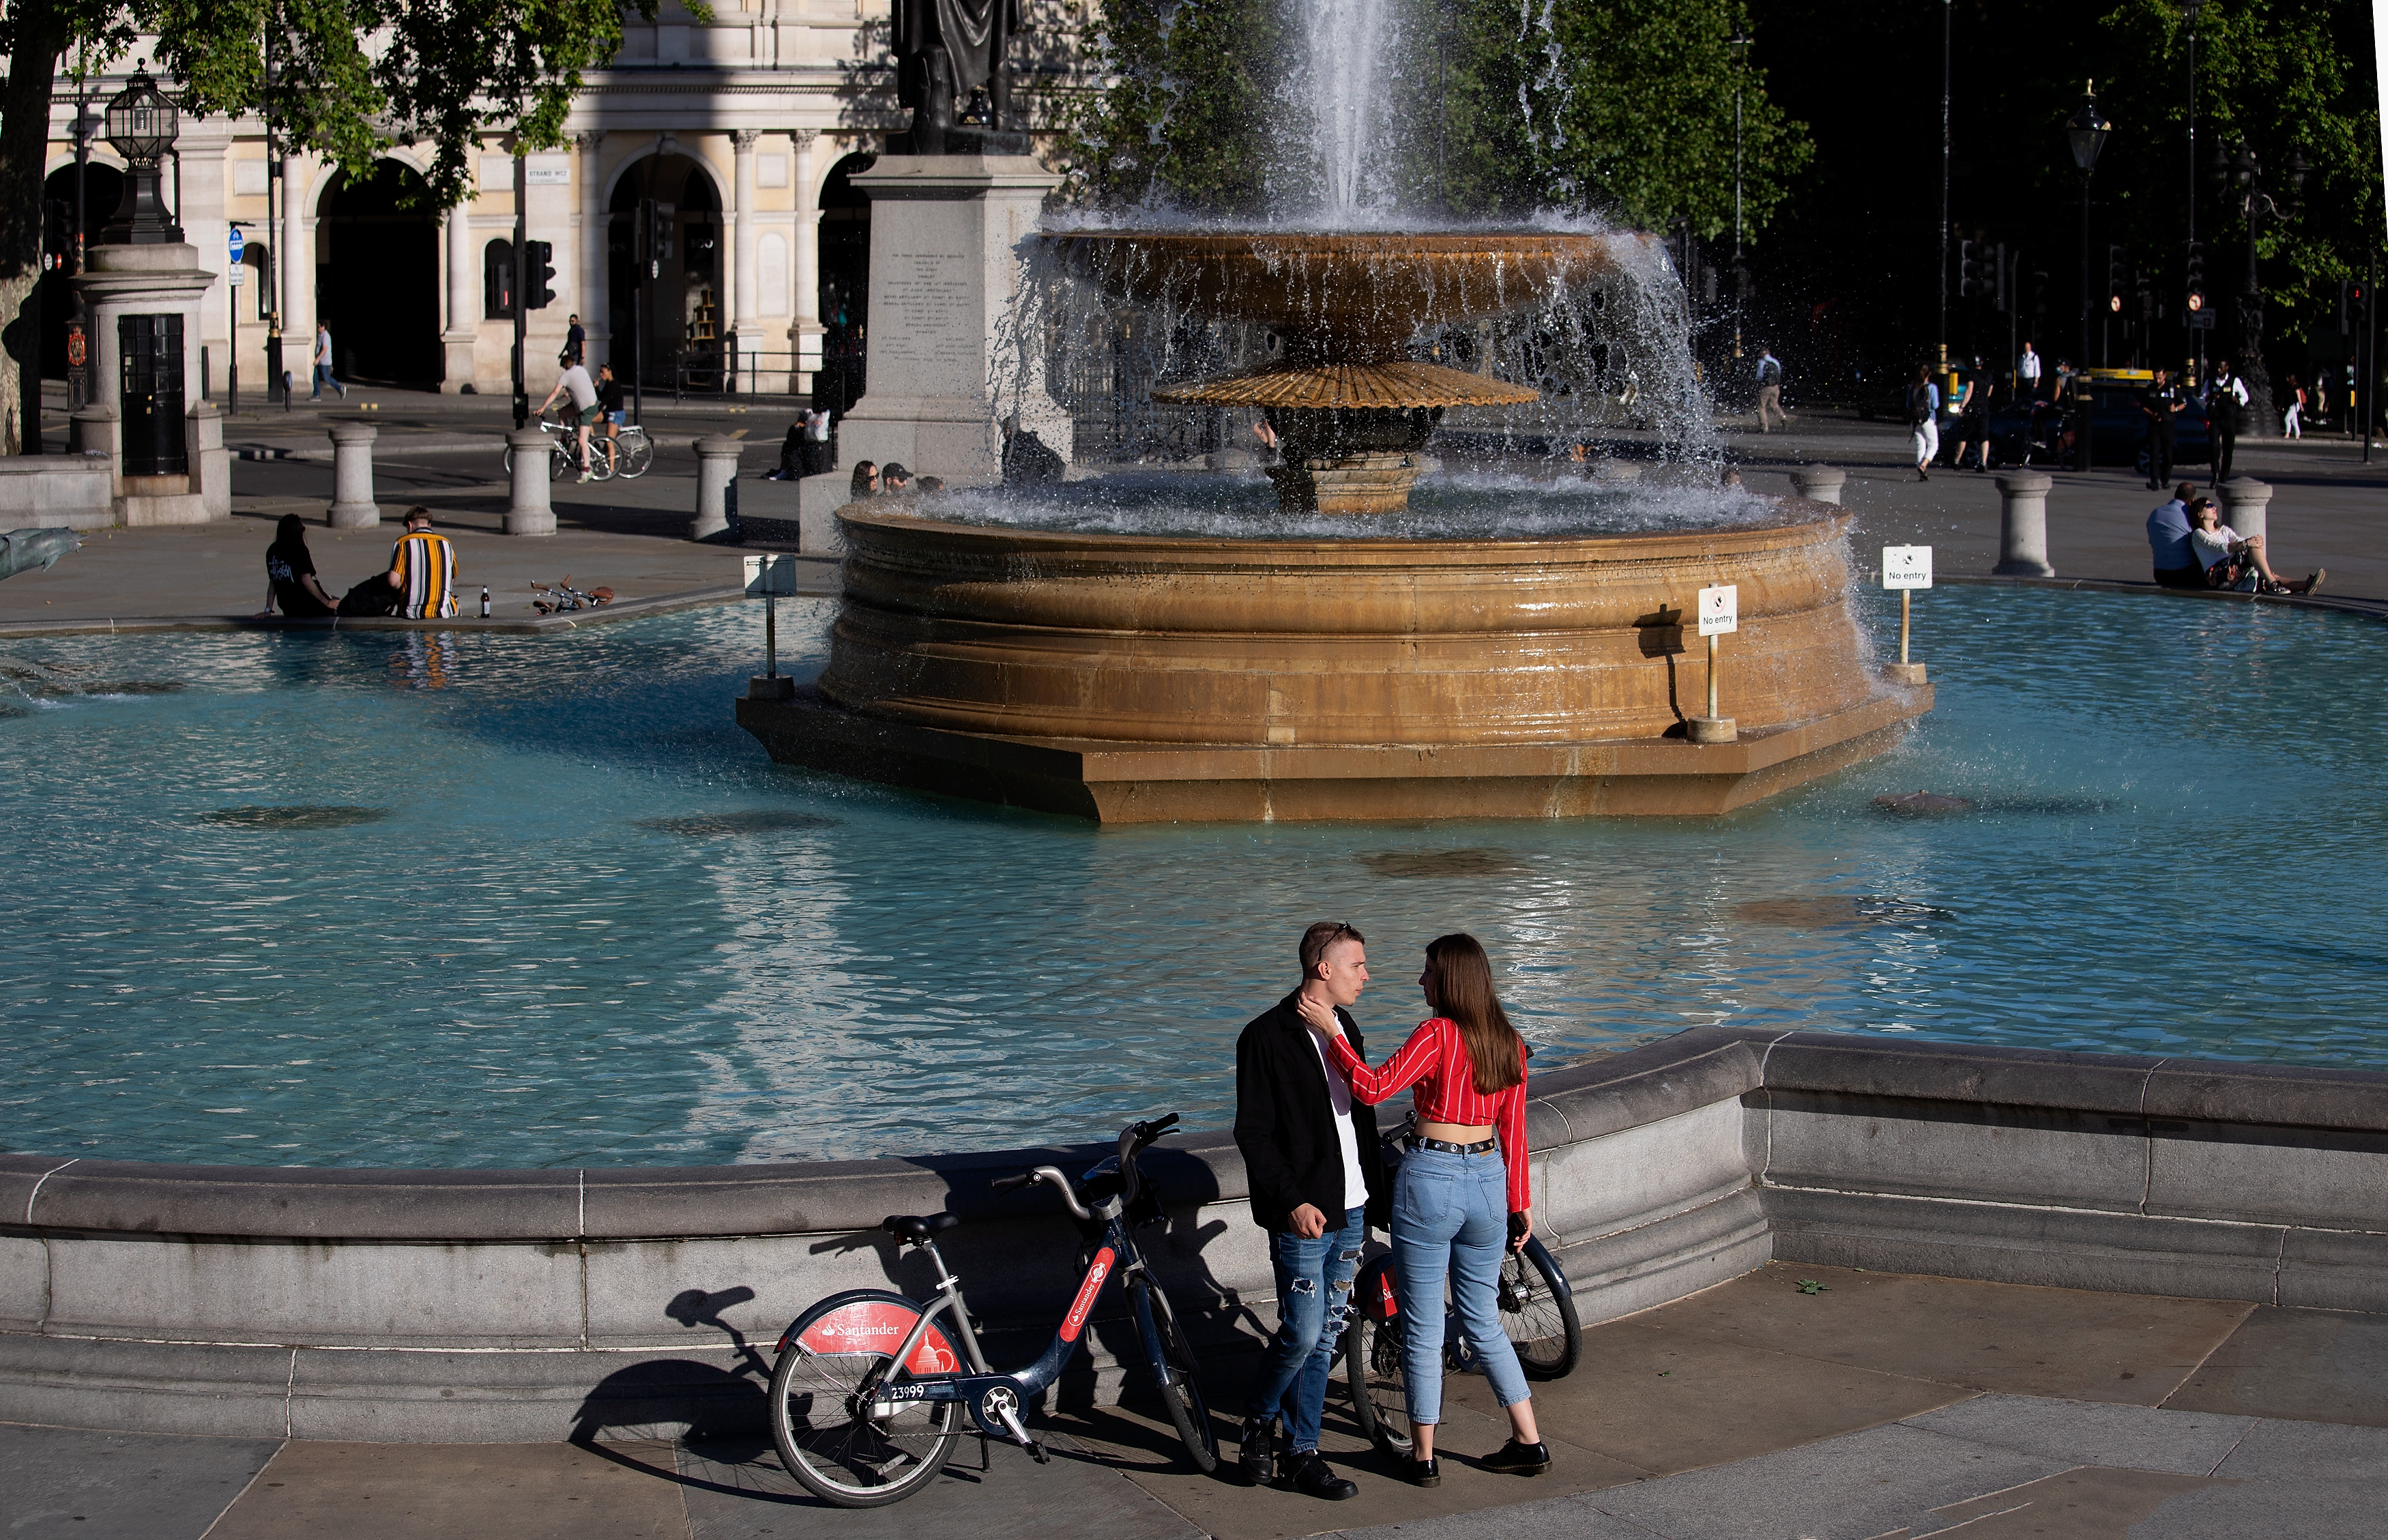 LONDON, ENGLAND - MAY 29: A couple with cycles meet in front of a fountain in Trafalgar Square during warm sunny weather on May 29, 2020 in London. The British government continues to ease the coronavirus lockdown by announcing schools will open to reception year pupils plus years one and six from June 1st. Open-air markets and car showrooms can also open from the same date.  (Photo by Jo Hale/Getty Images)